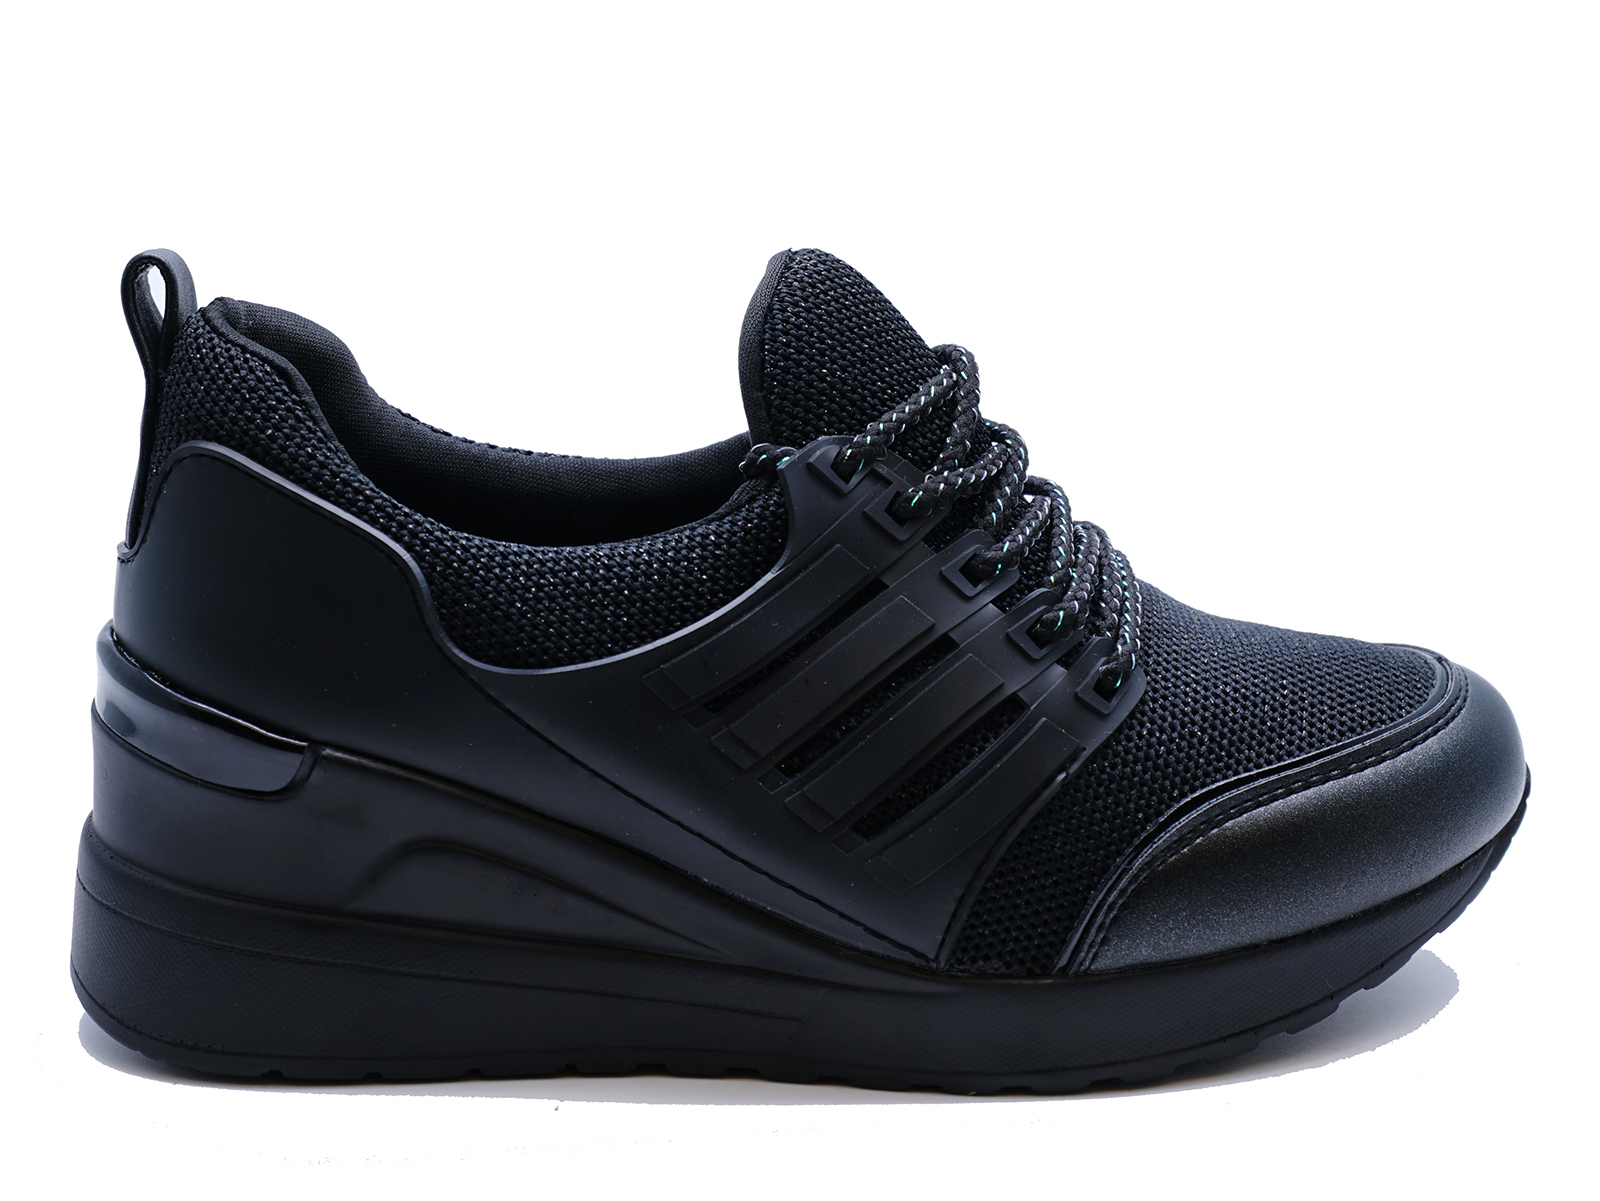 4ee243dbb67 Sentinel WOMENS BLACK SLIP-ON HIDDEN-WEDGE TRAINERS CASUAL PLIMSOLLS SHOES  SIZES 3-8